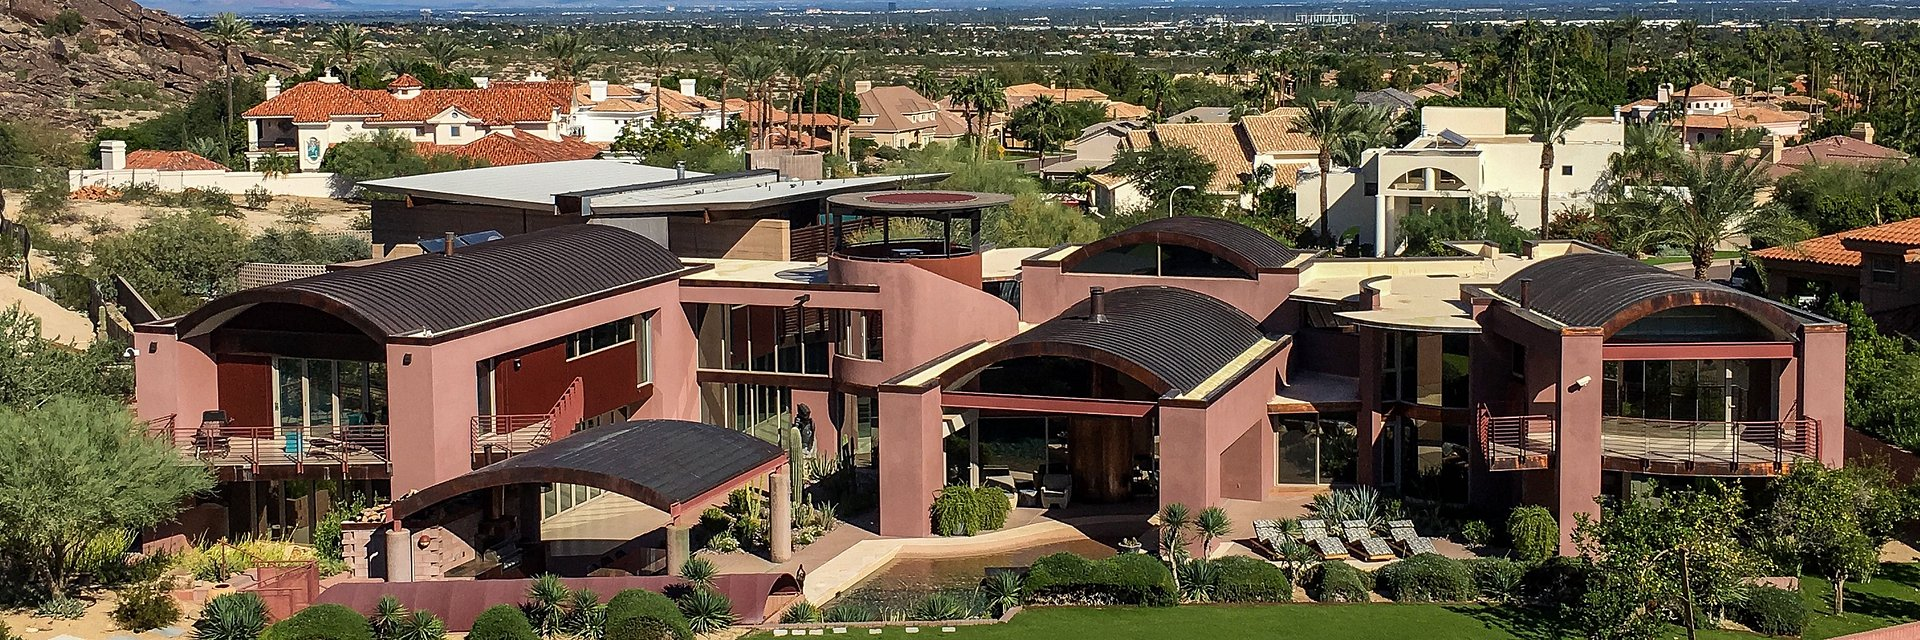 Coldwell Banker Residential Brokerage Lists Phoenix Property for $4.7 Million